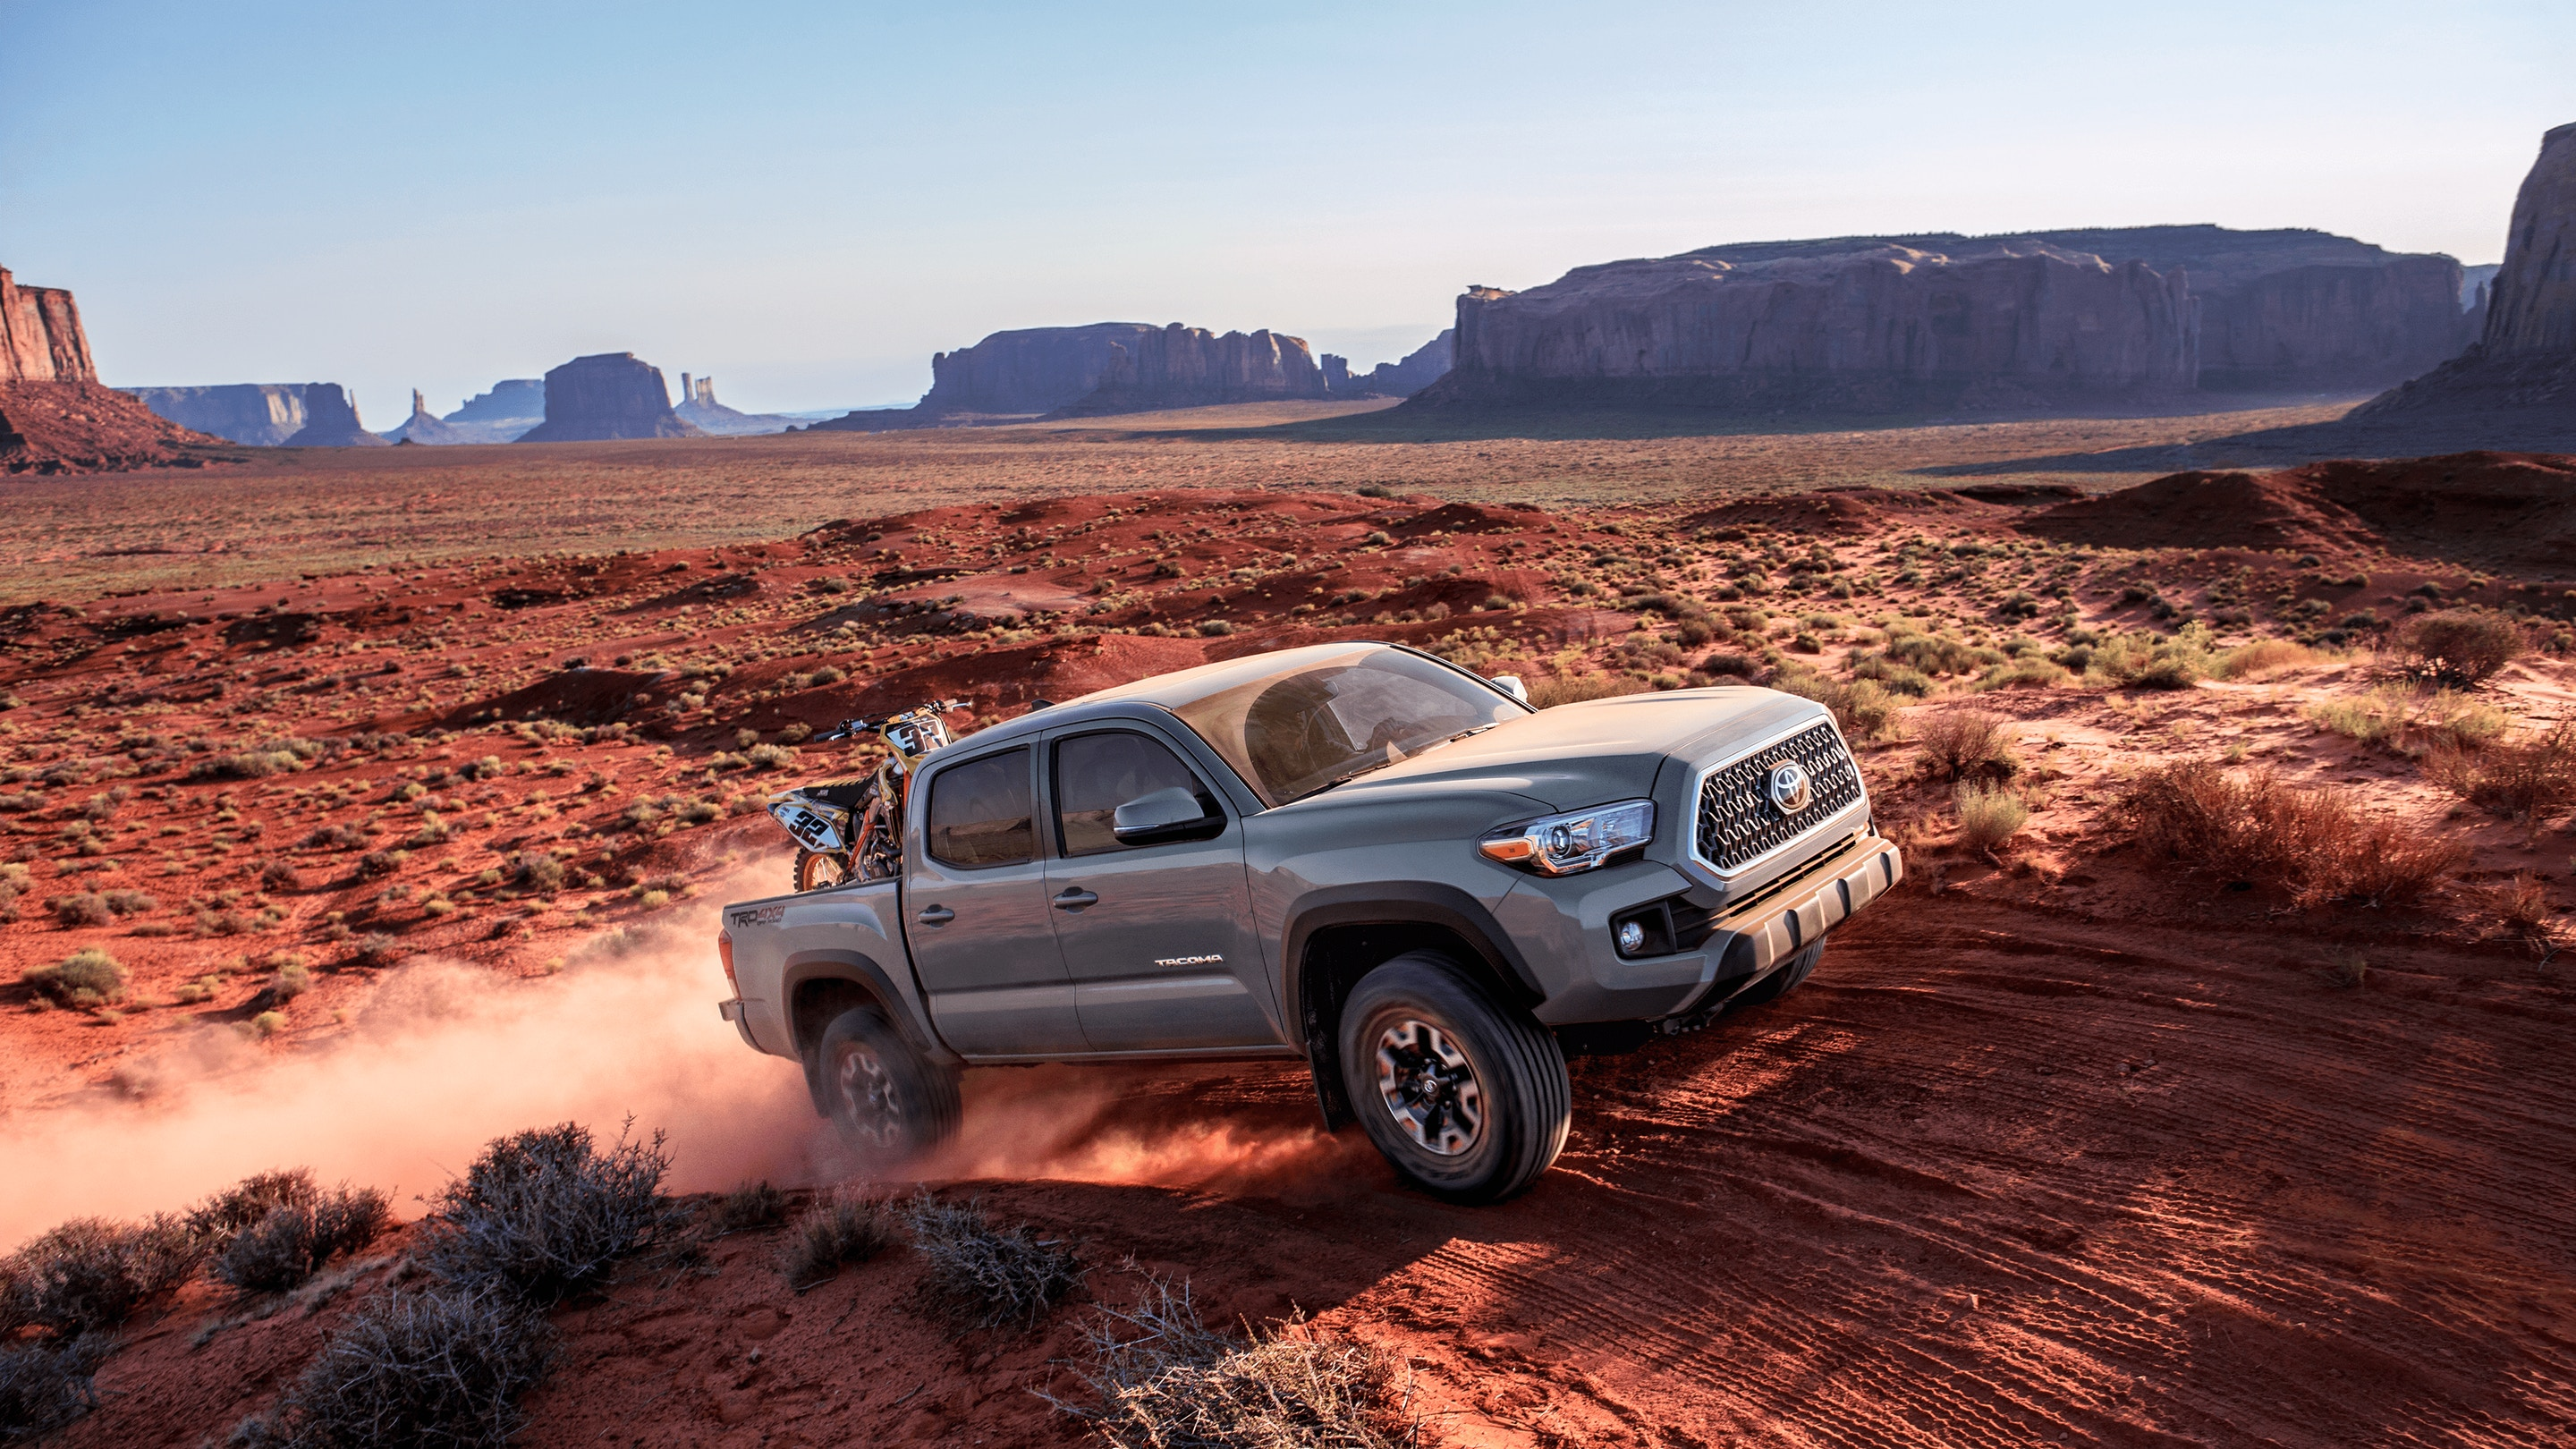 Image of a gray Toyota Tacoma truck driving off-road in the desert.